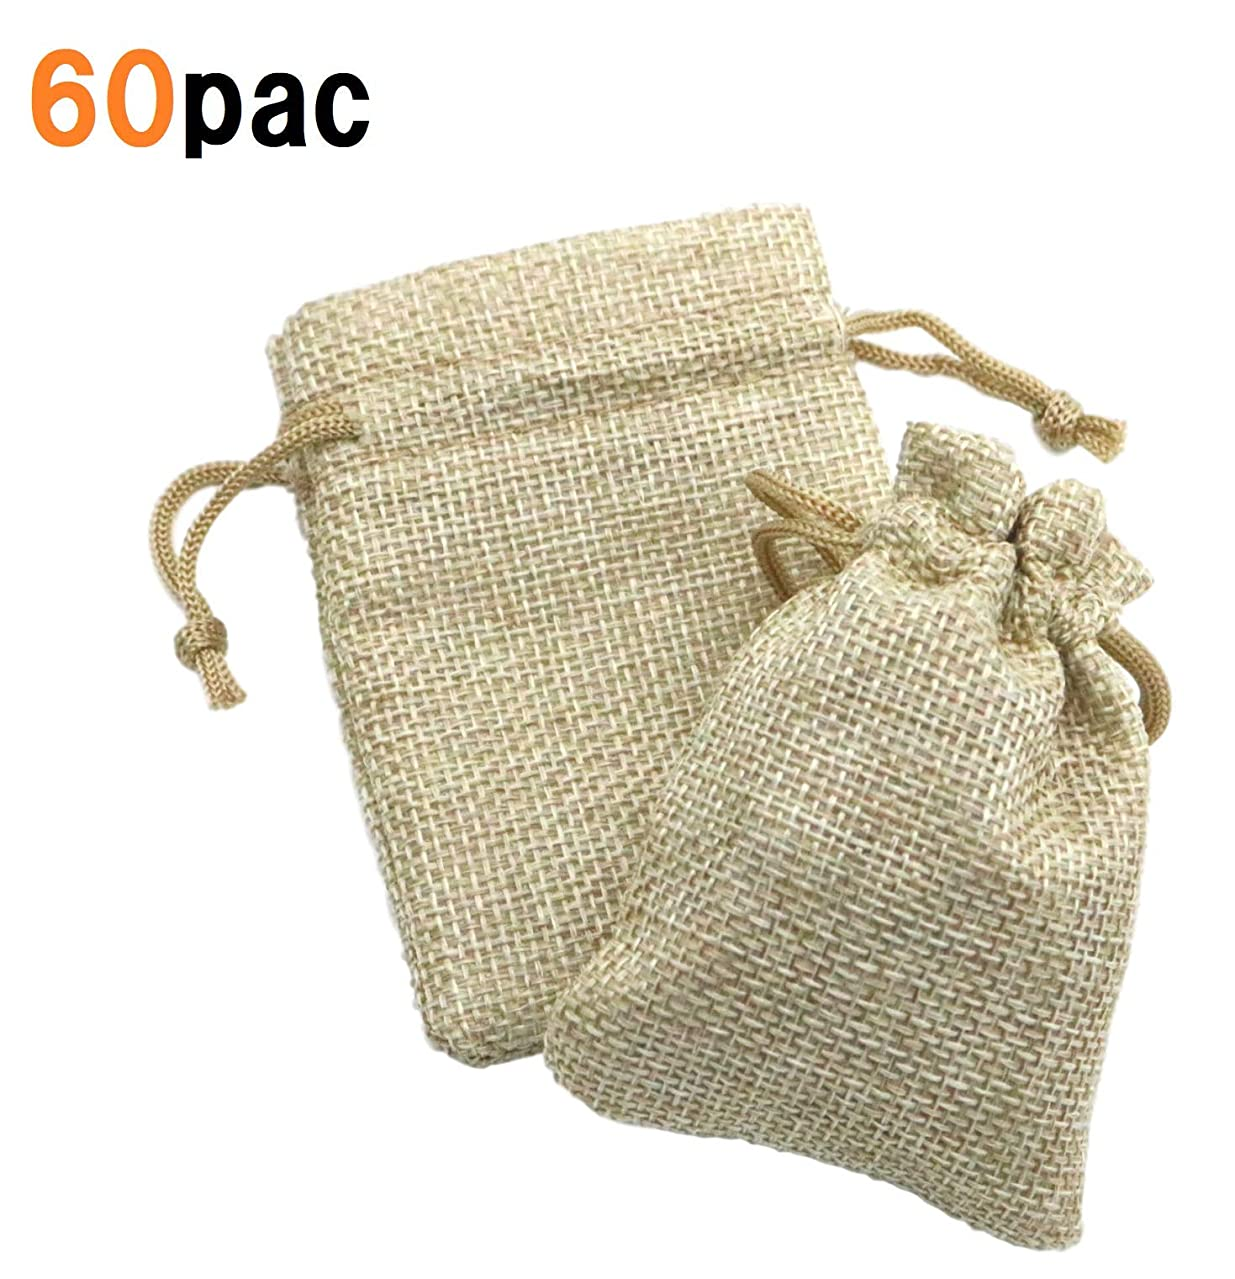 DuringVillage Burlap Bags with Drawstring Gift Bag Linen Burlap Jewelry Pouches Sacks for Wedding Party Favors DIY Craft 4x6 (60)